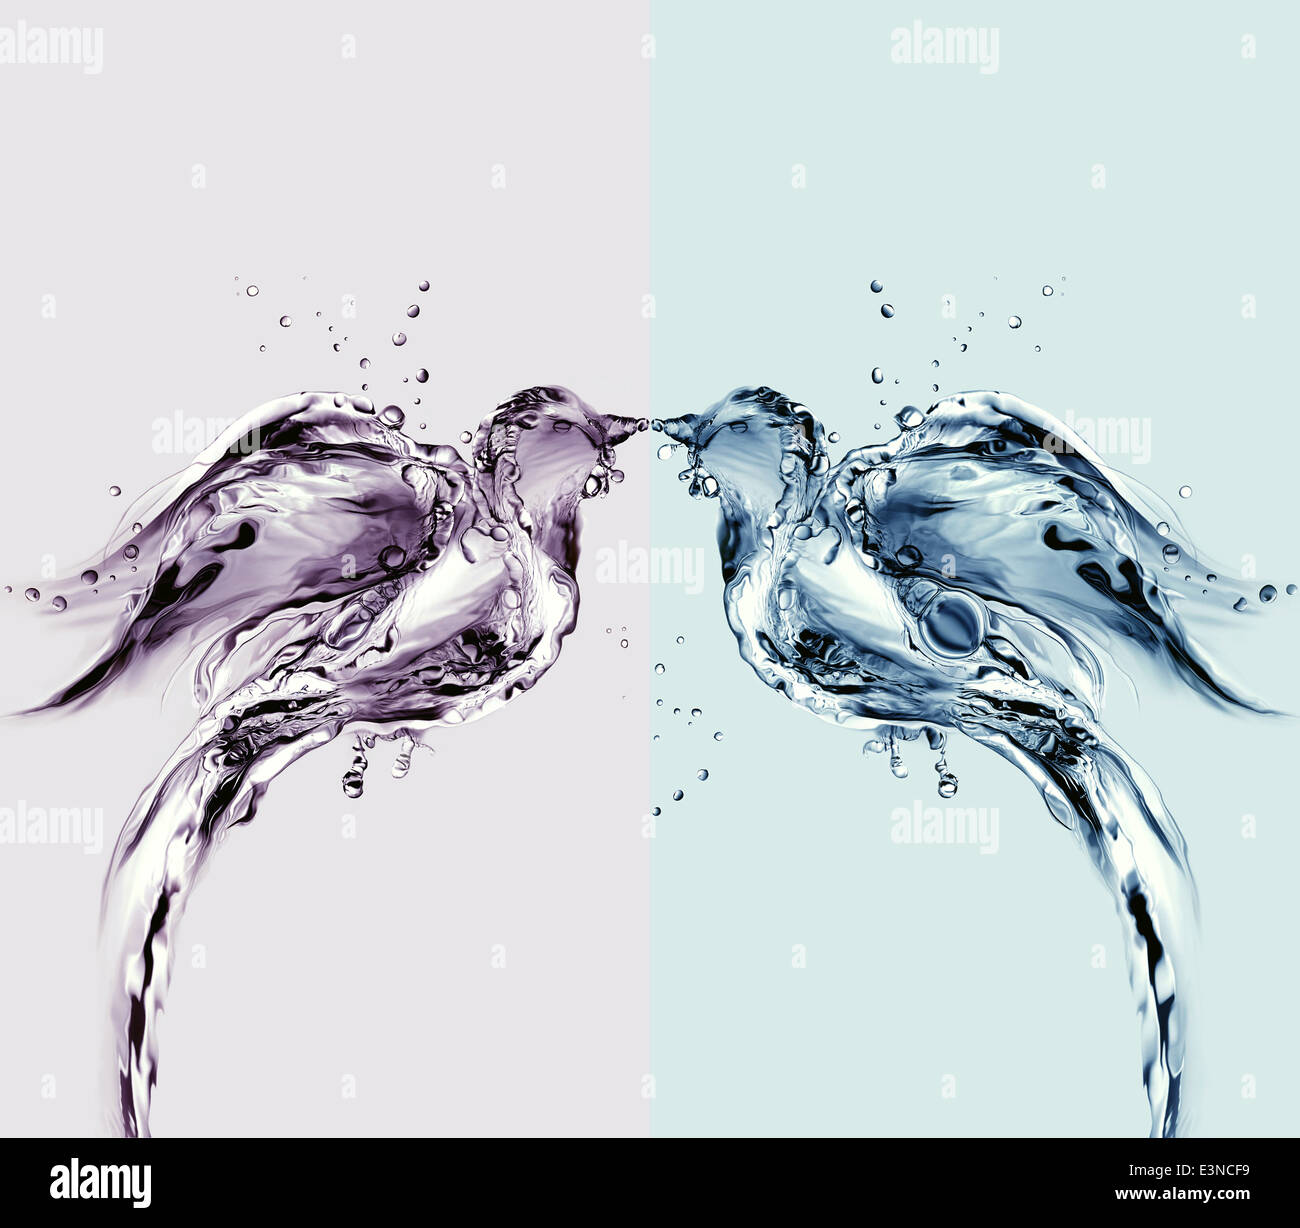 Two birds made of water kissing. - Stock Image